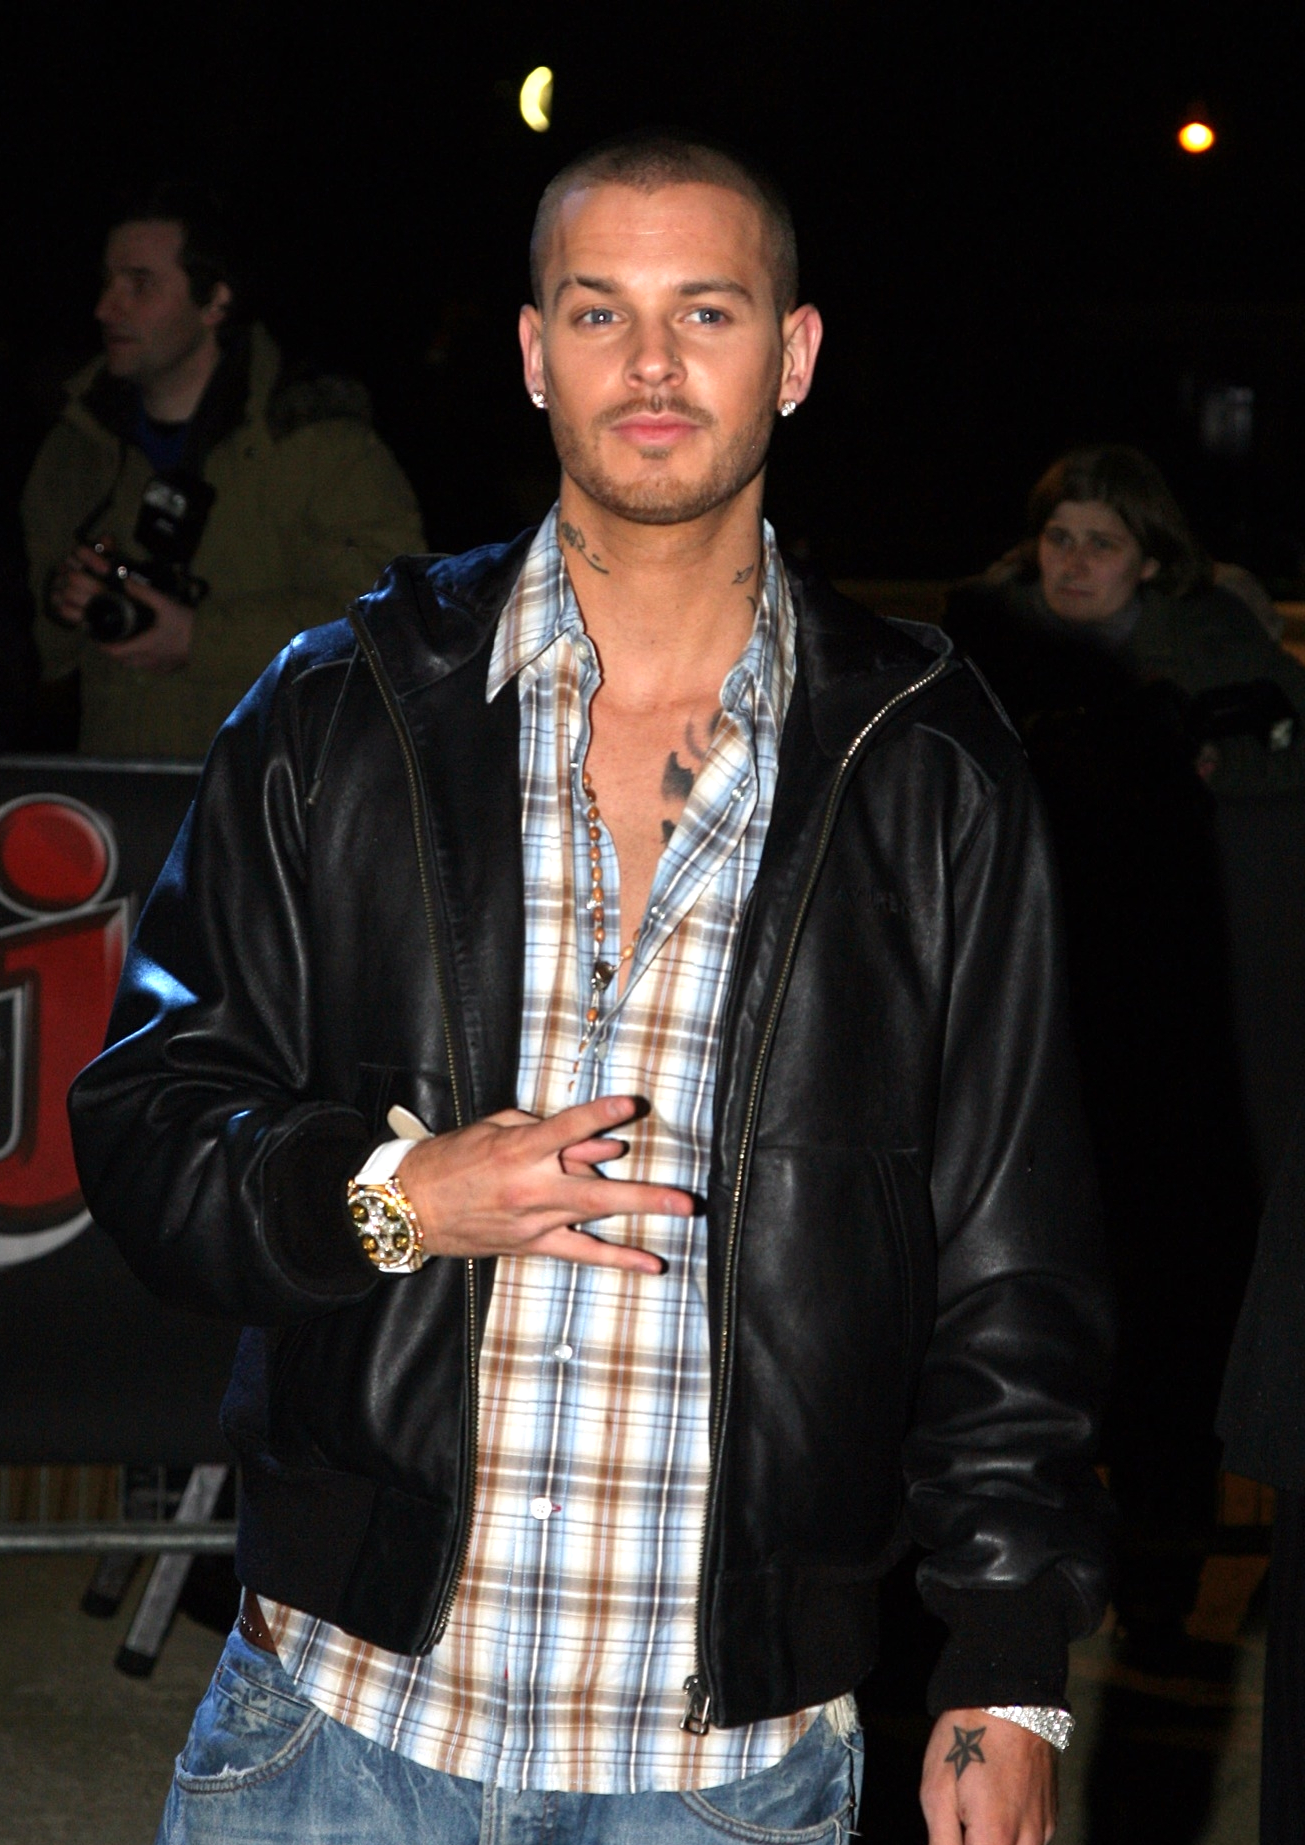 Matt pokora images mars 23 2007 lancement de nrj hits hd wallpaper and background photos 30970448 - Image de m pokora ...